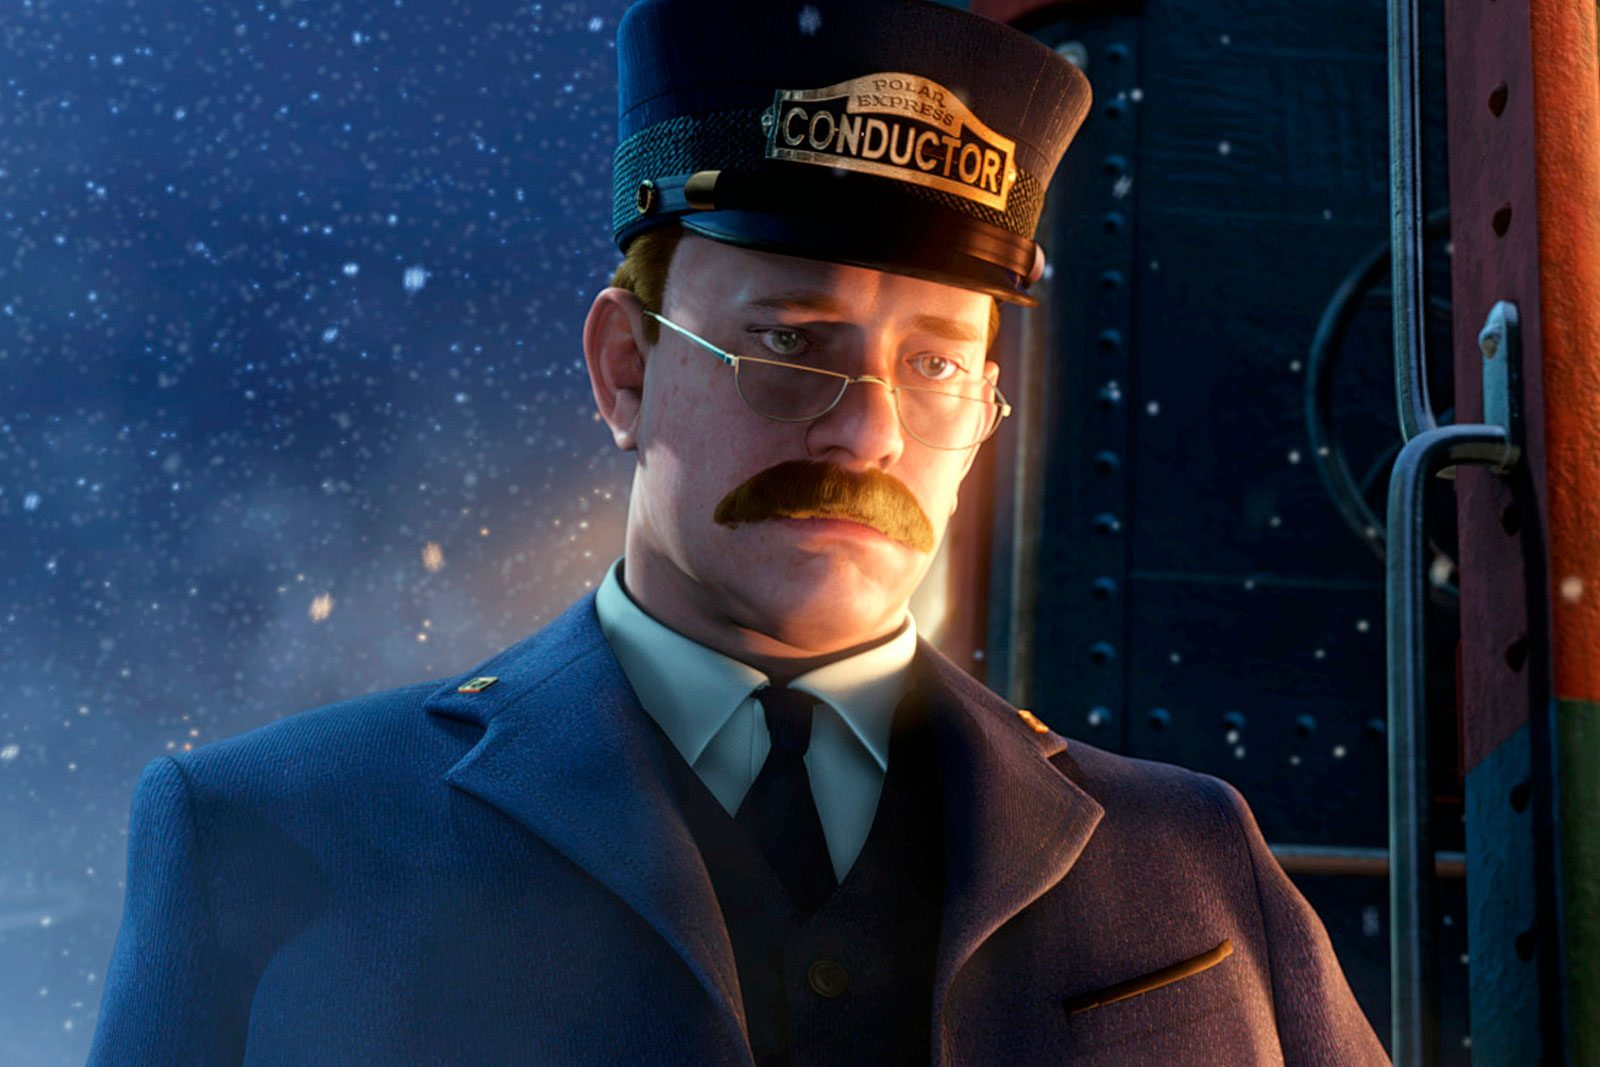 Tom Hanks as the Conductor in The Polar Express